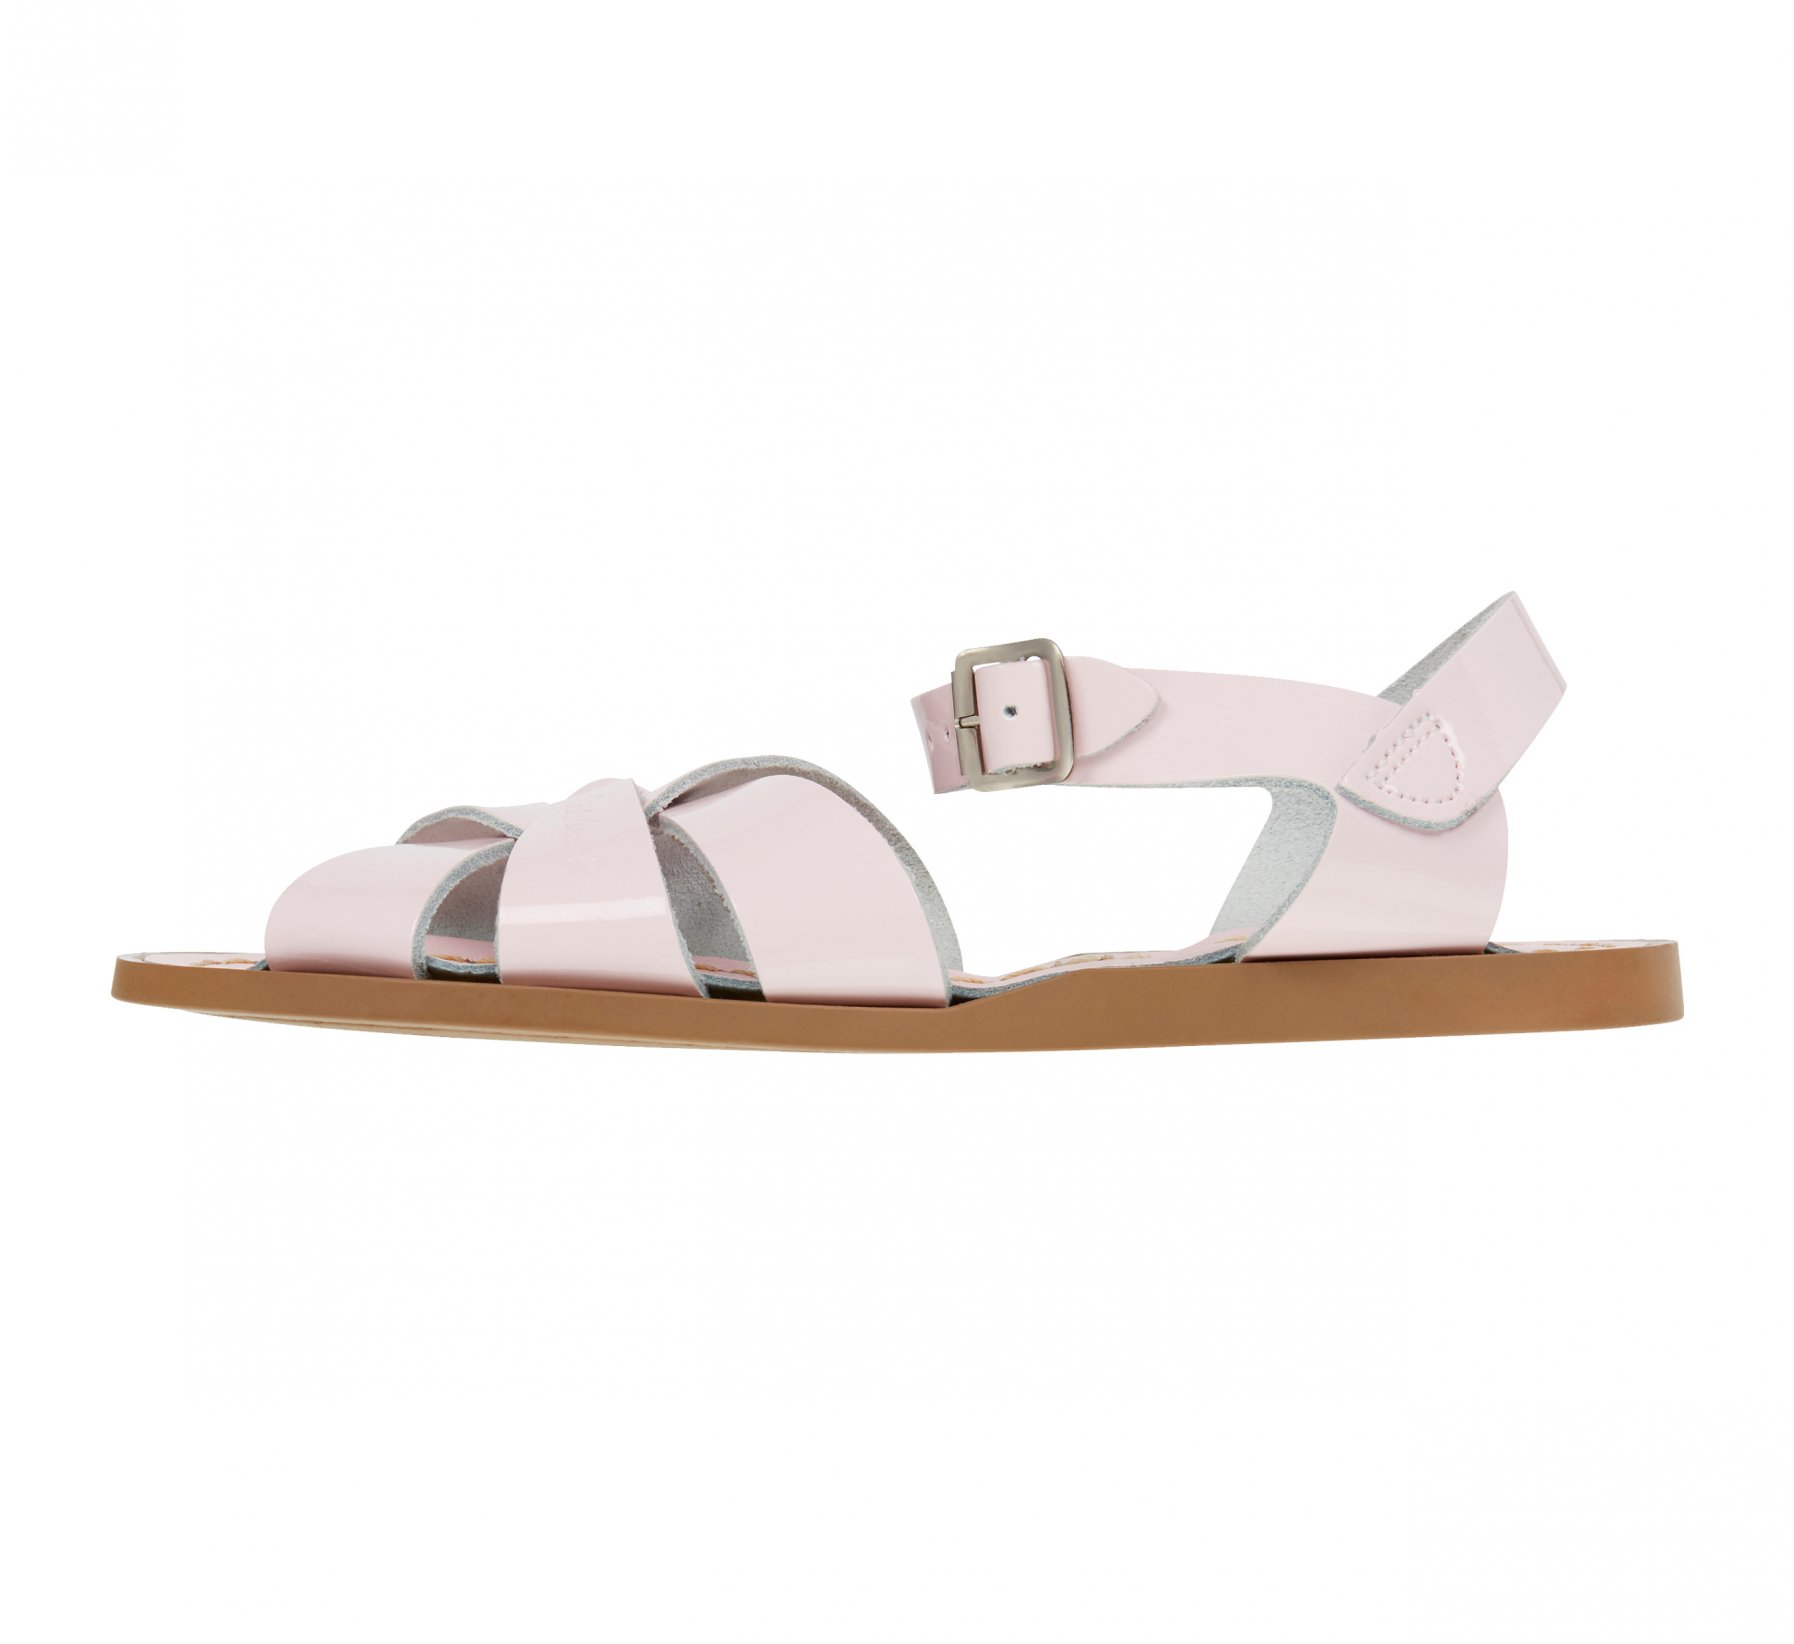 Original Shiny Pink - Salt Water Sandals